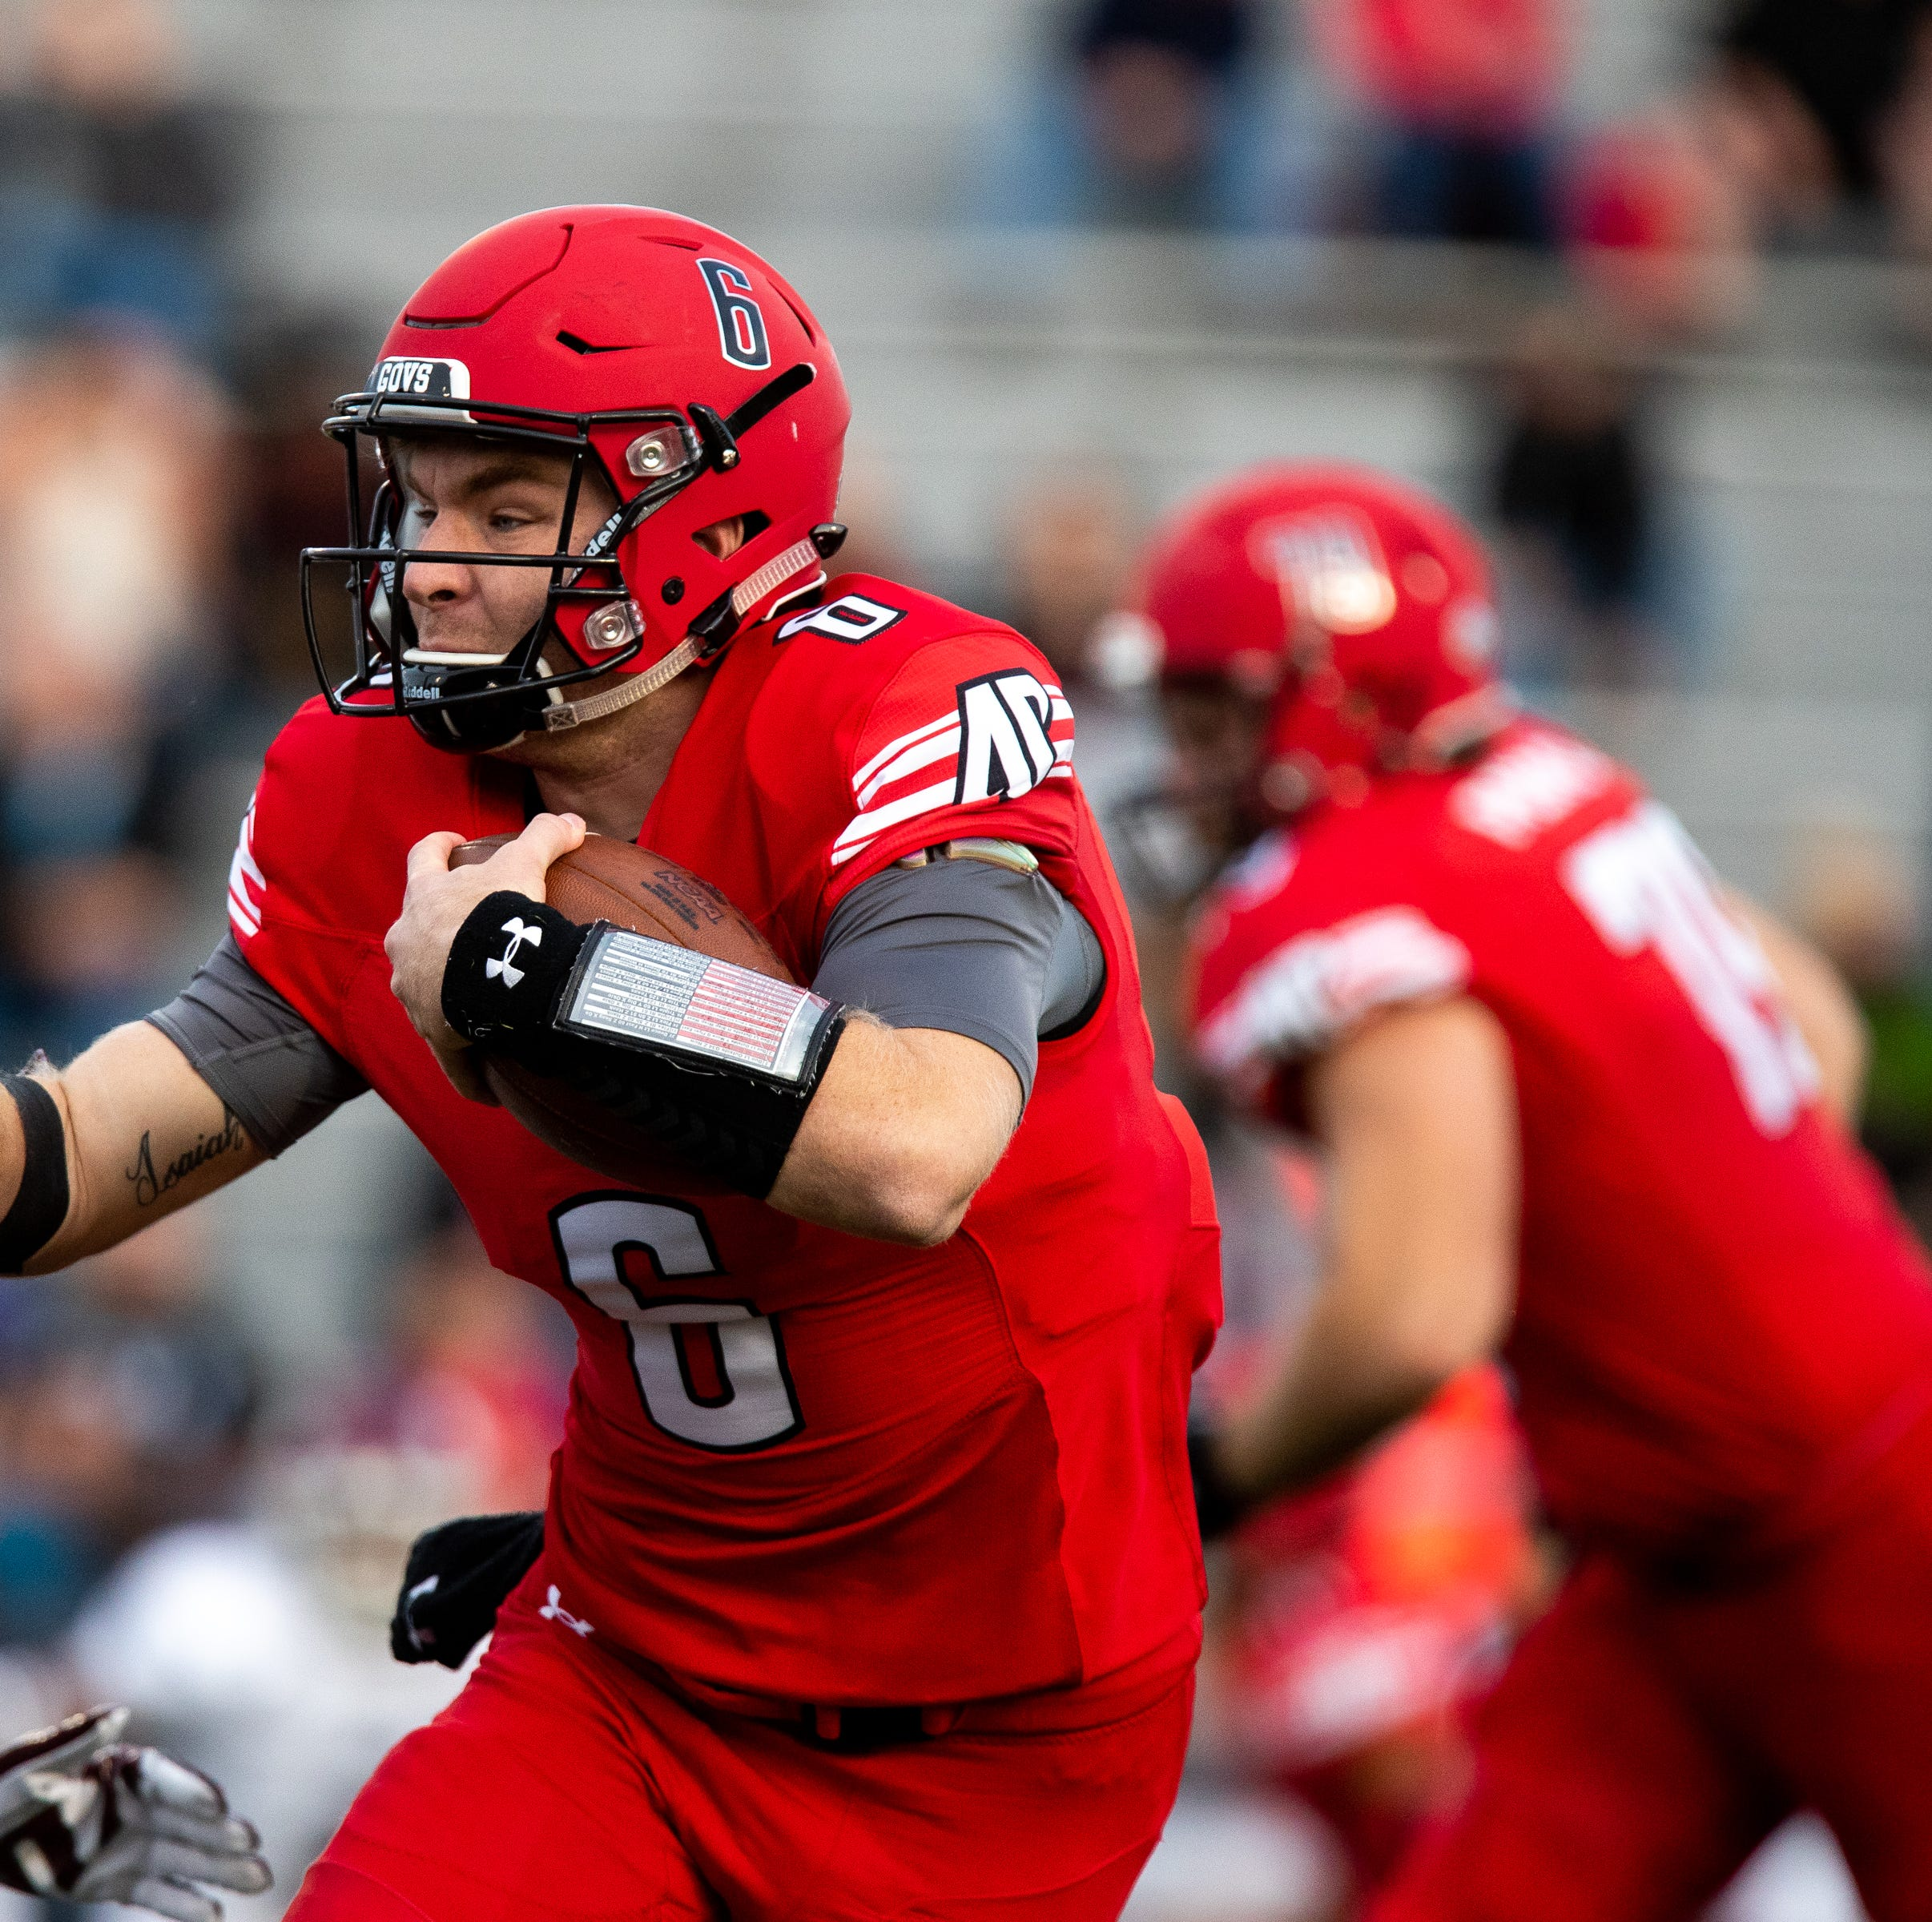 Austin Peay football sets dates for spring football schedule